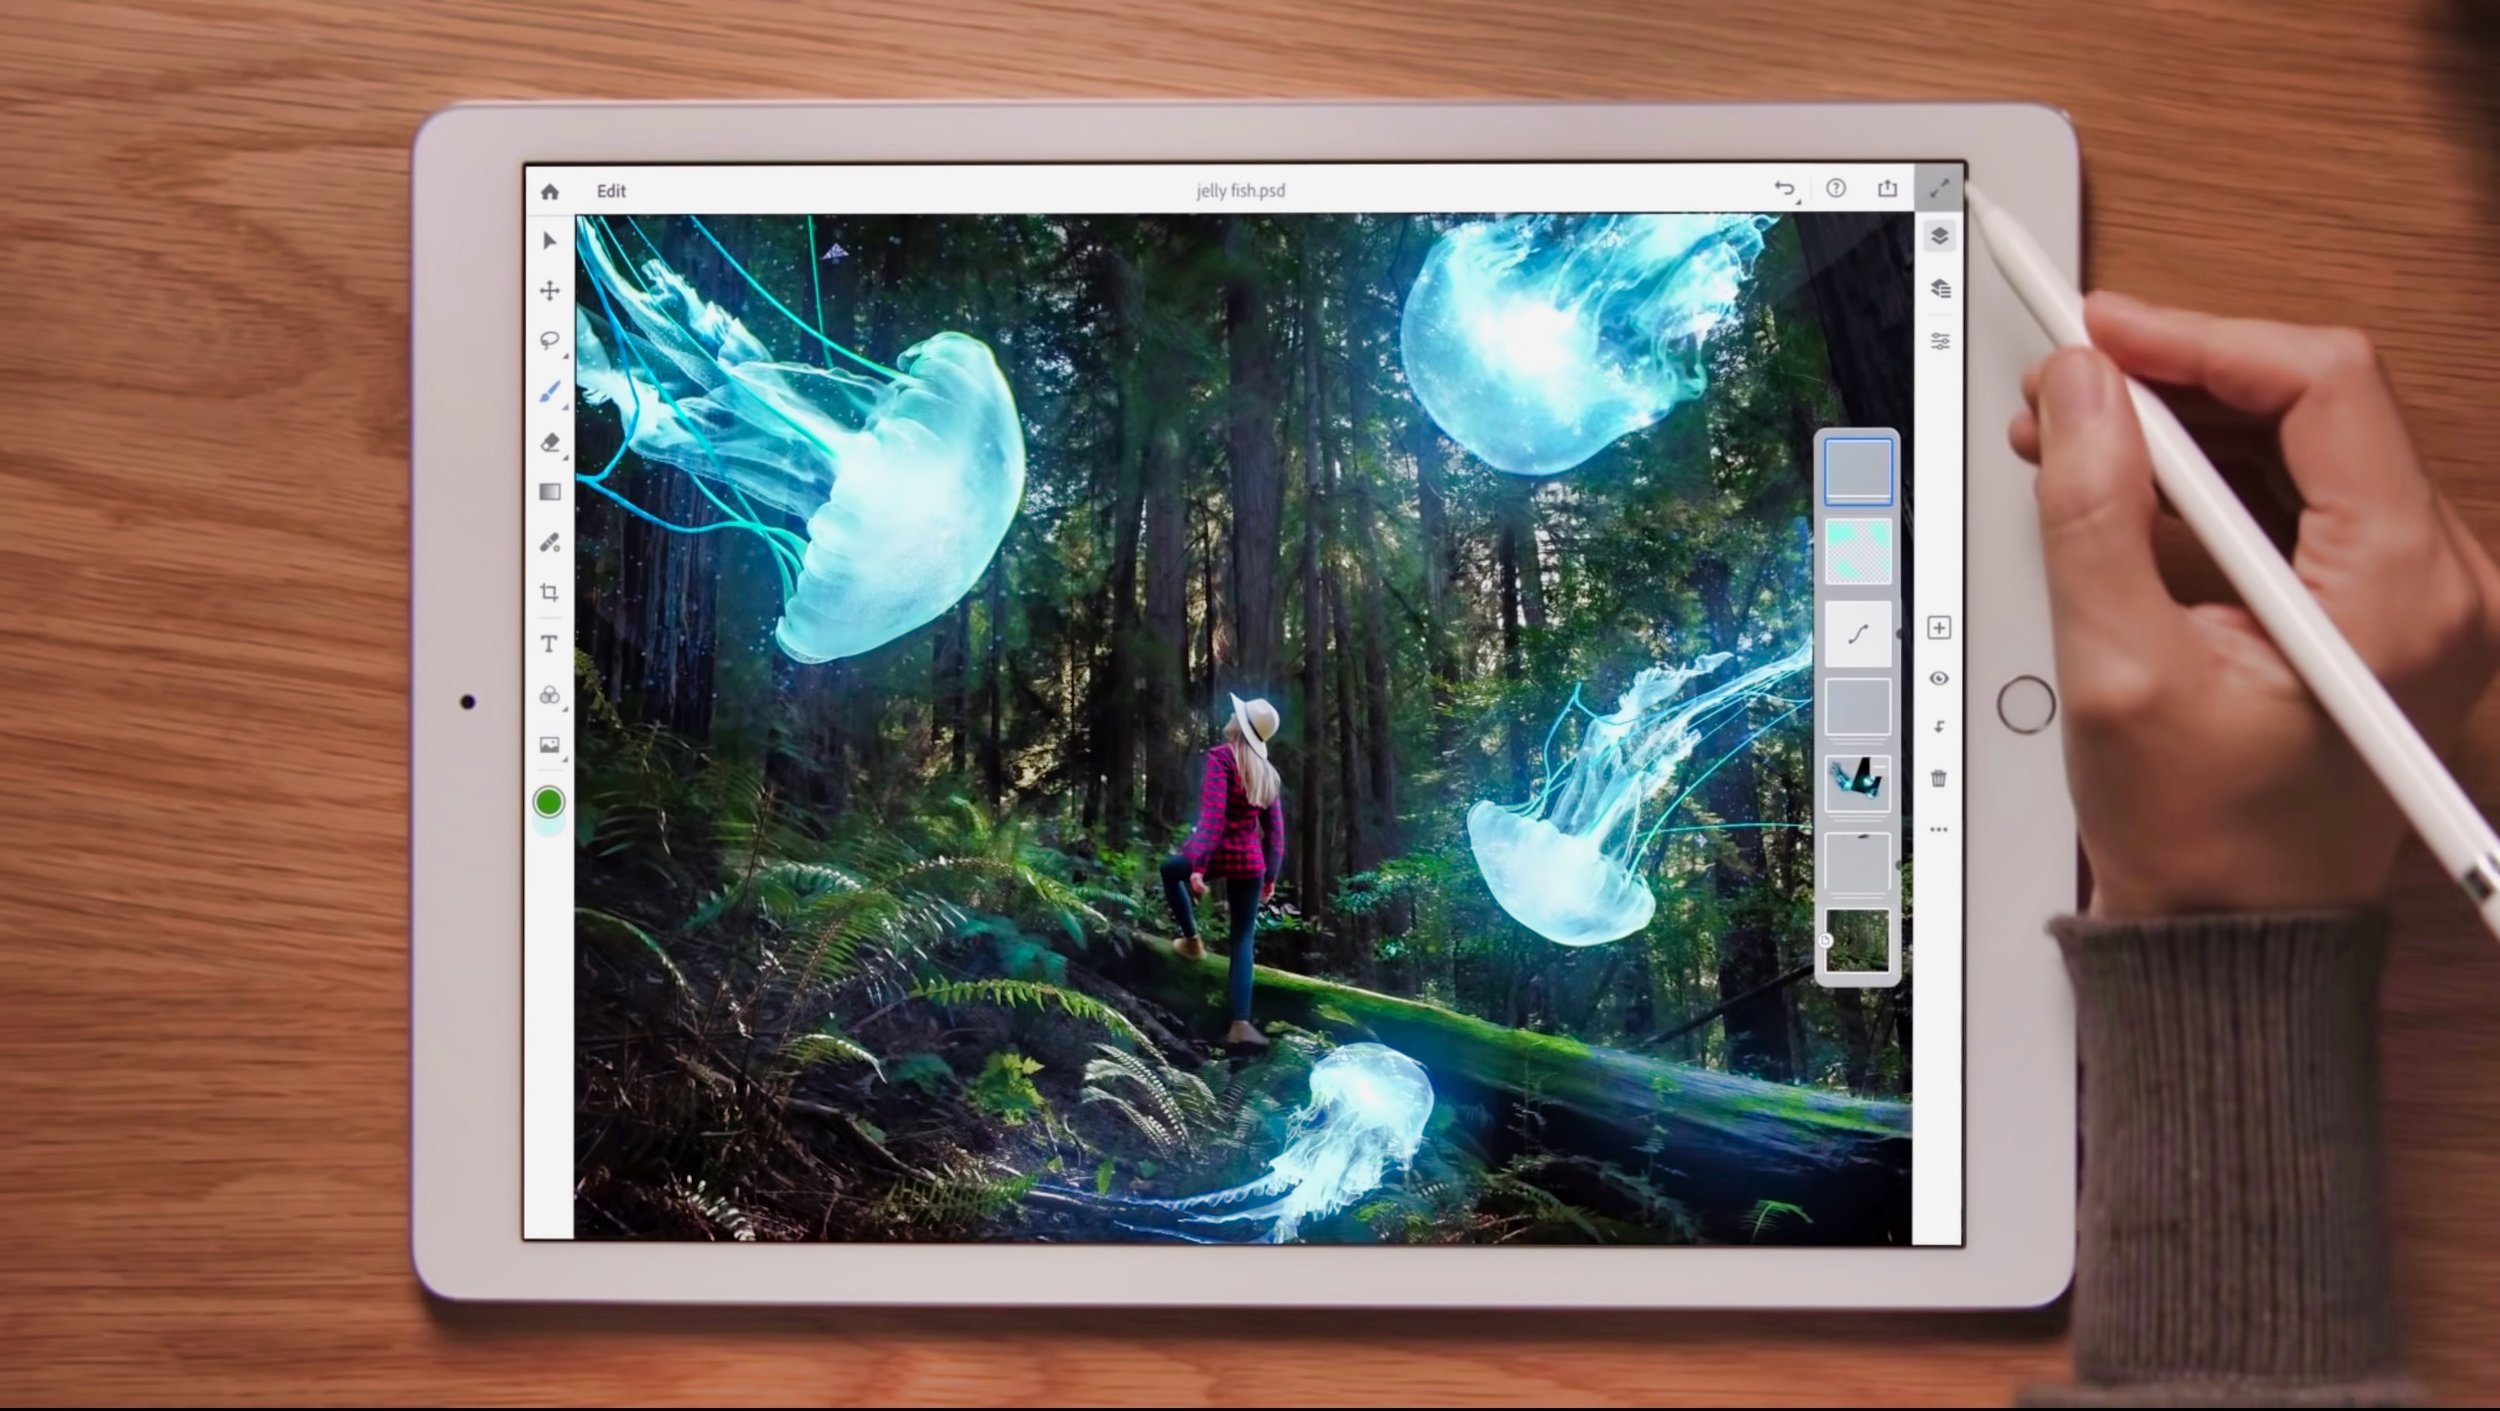 Adobe Photoshop CC on iPad.jpeg